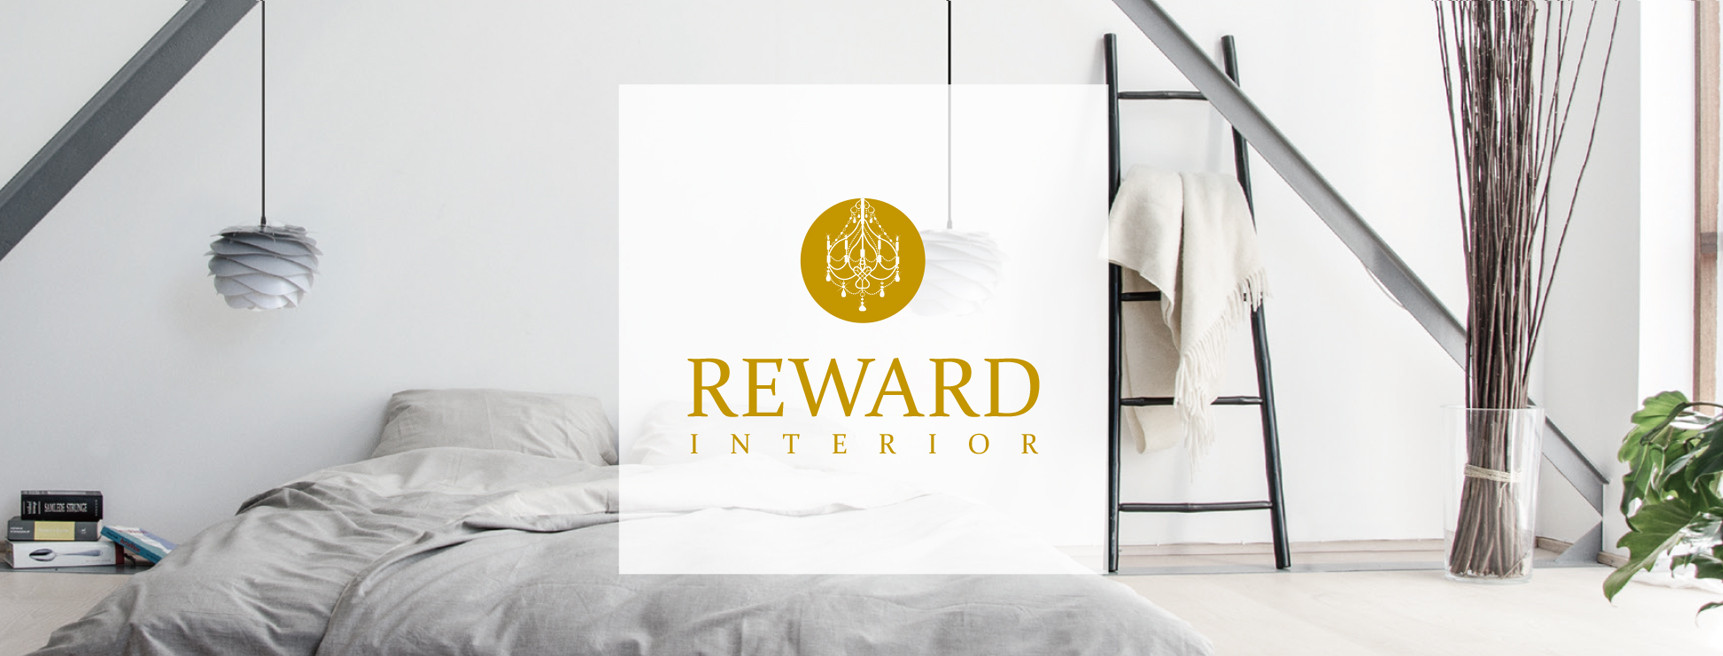 REWARD INTERIOR